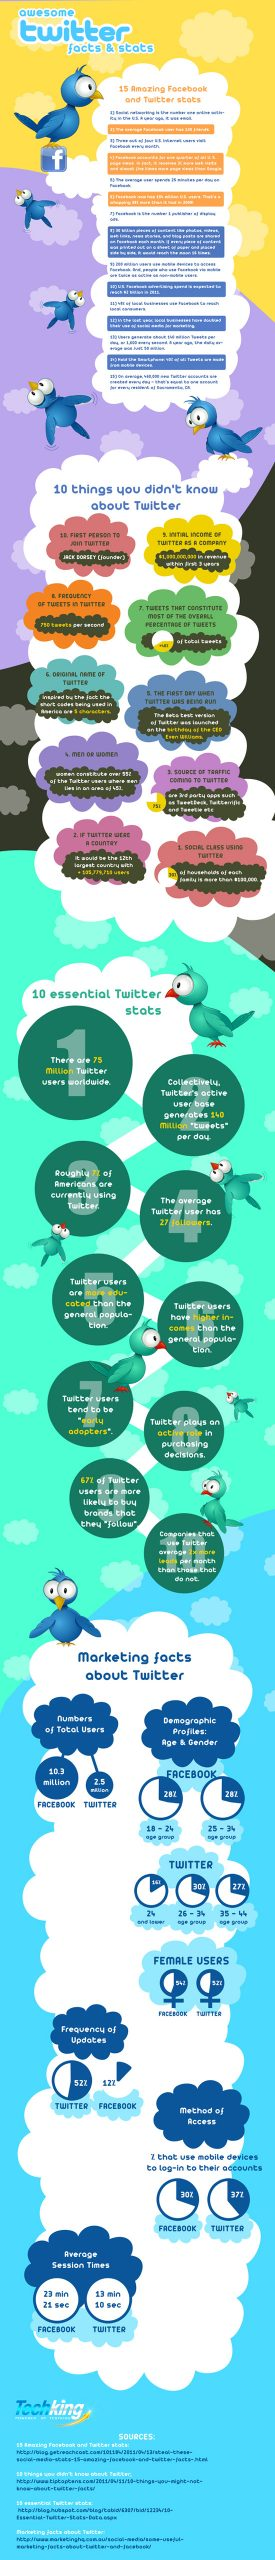 Awesome Yet Revealing Stats And Facts About Twitter (Infographic) 11